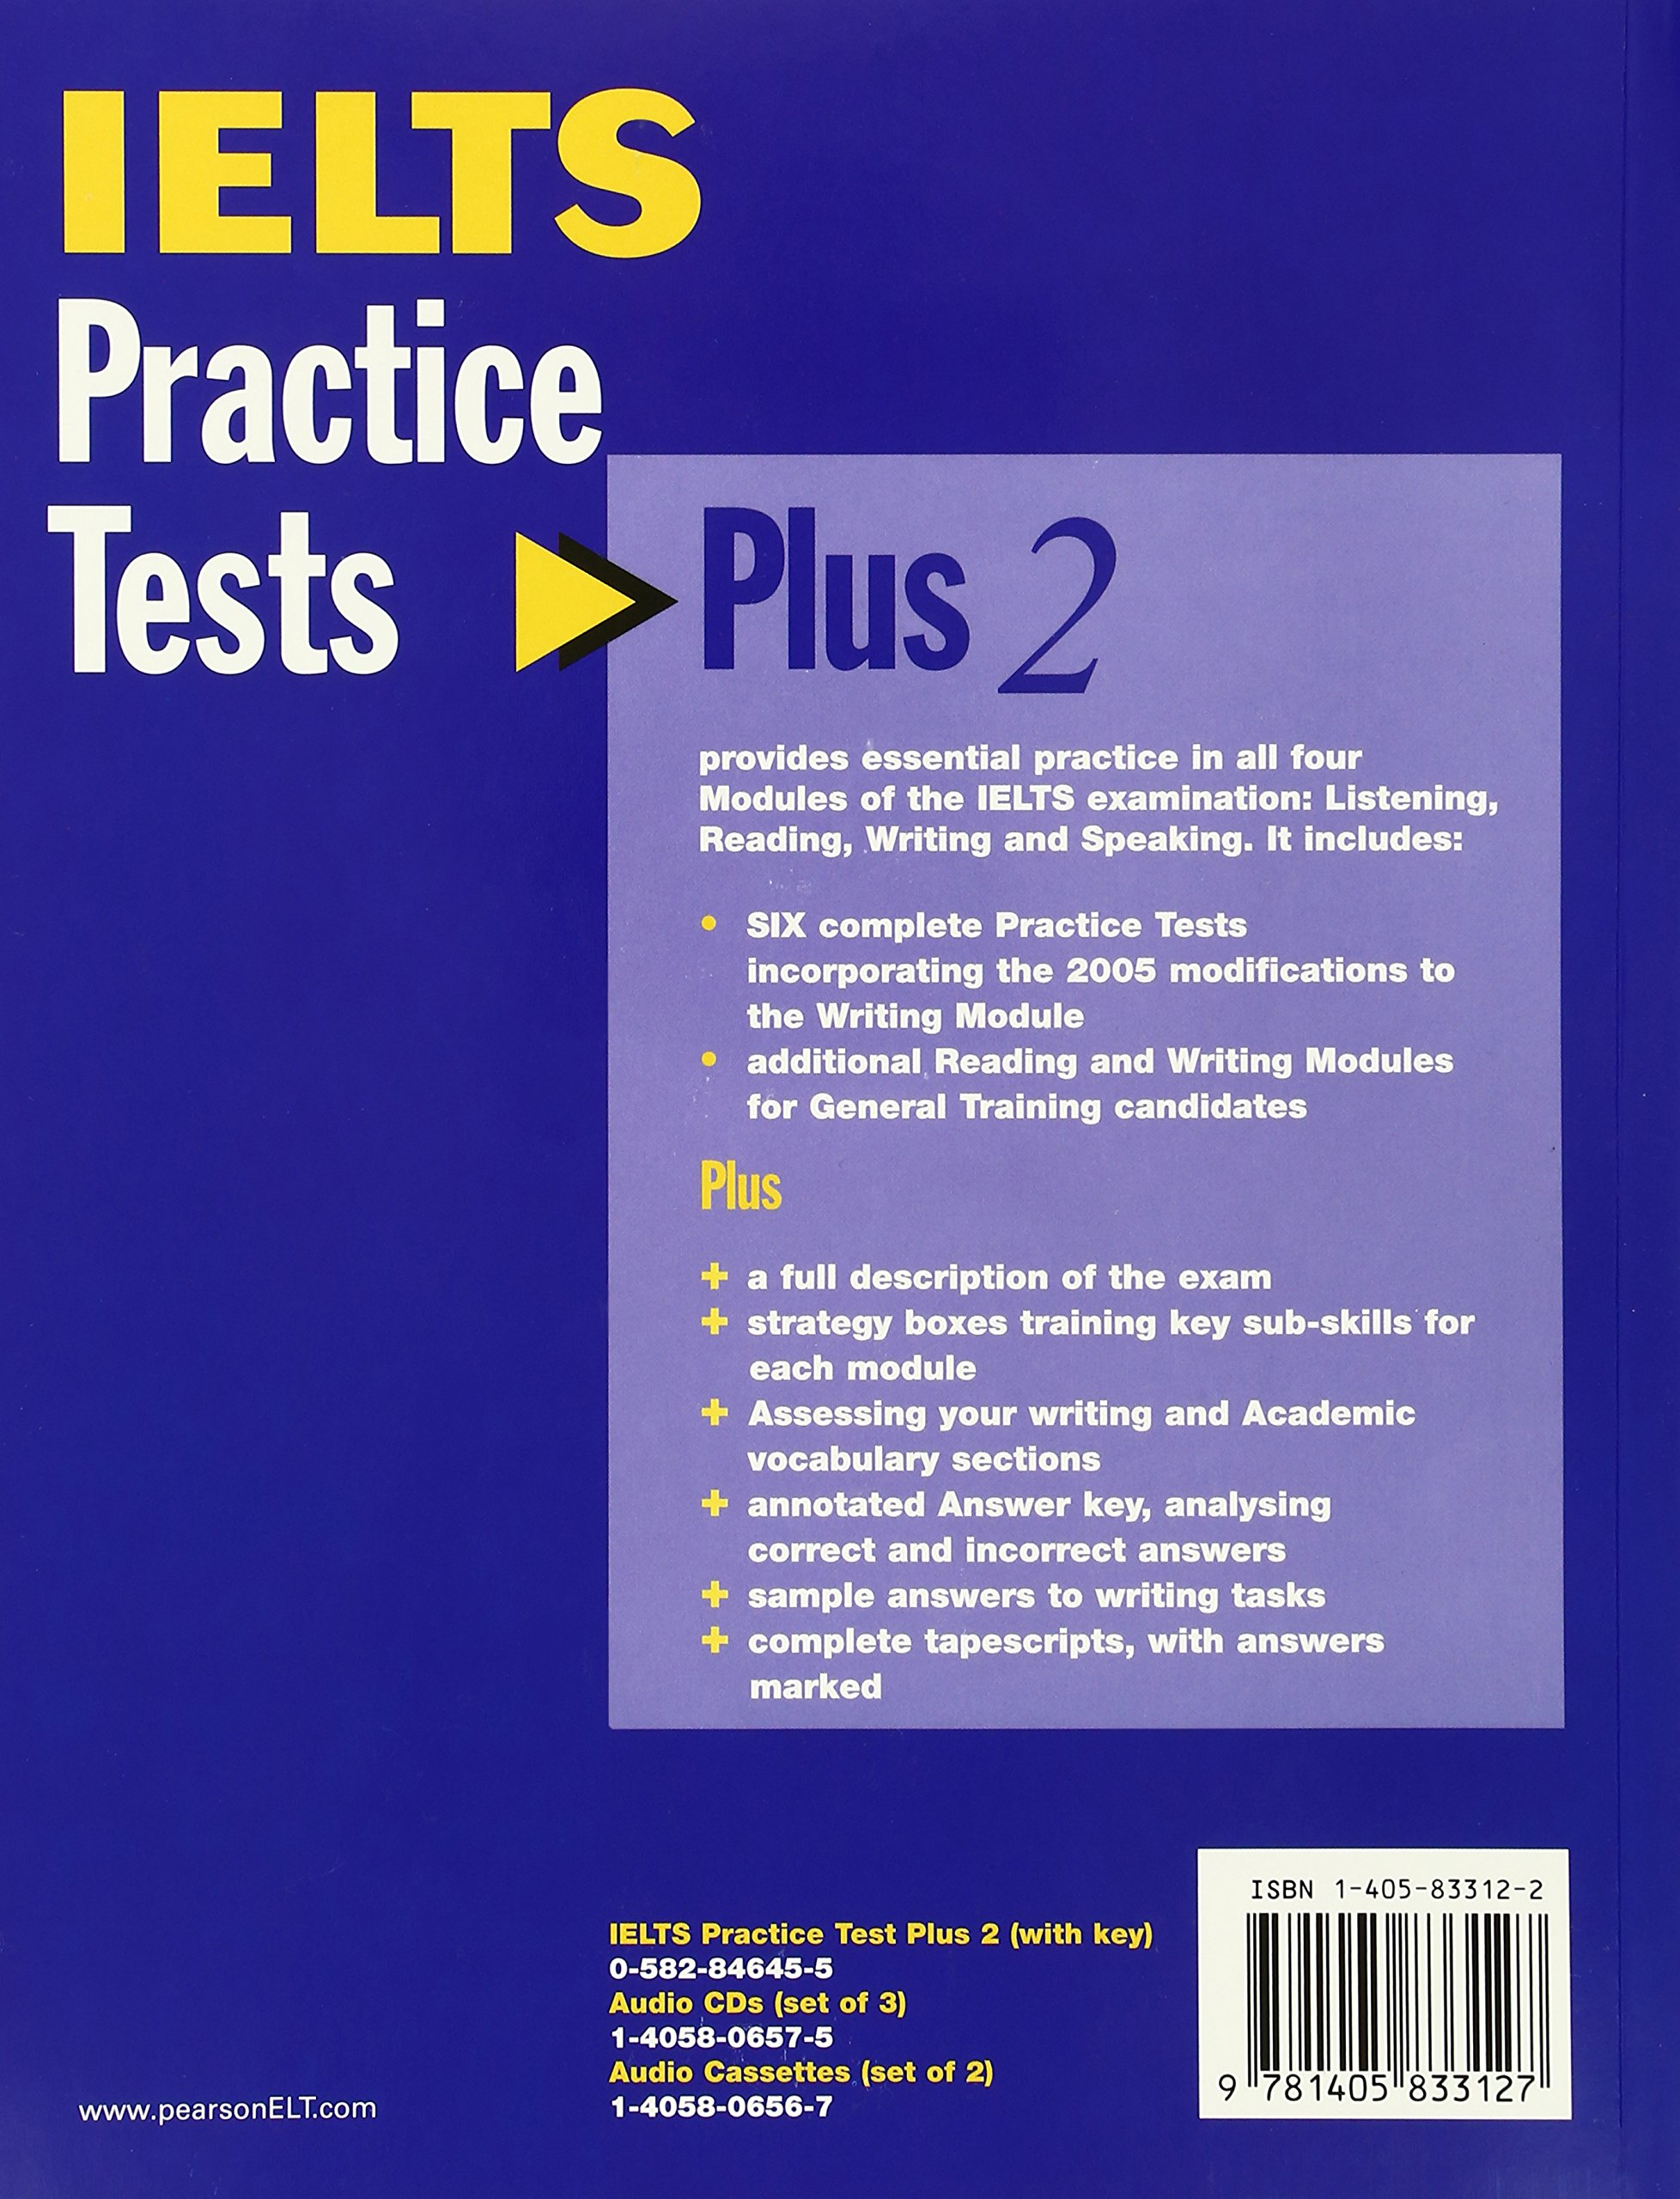 Buy ielts practice tests plus 2 with key and cd pack book online at low prices in india ielts practice tests plus 2 with key and cd pack reviews ratings